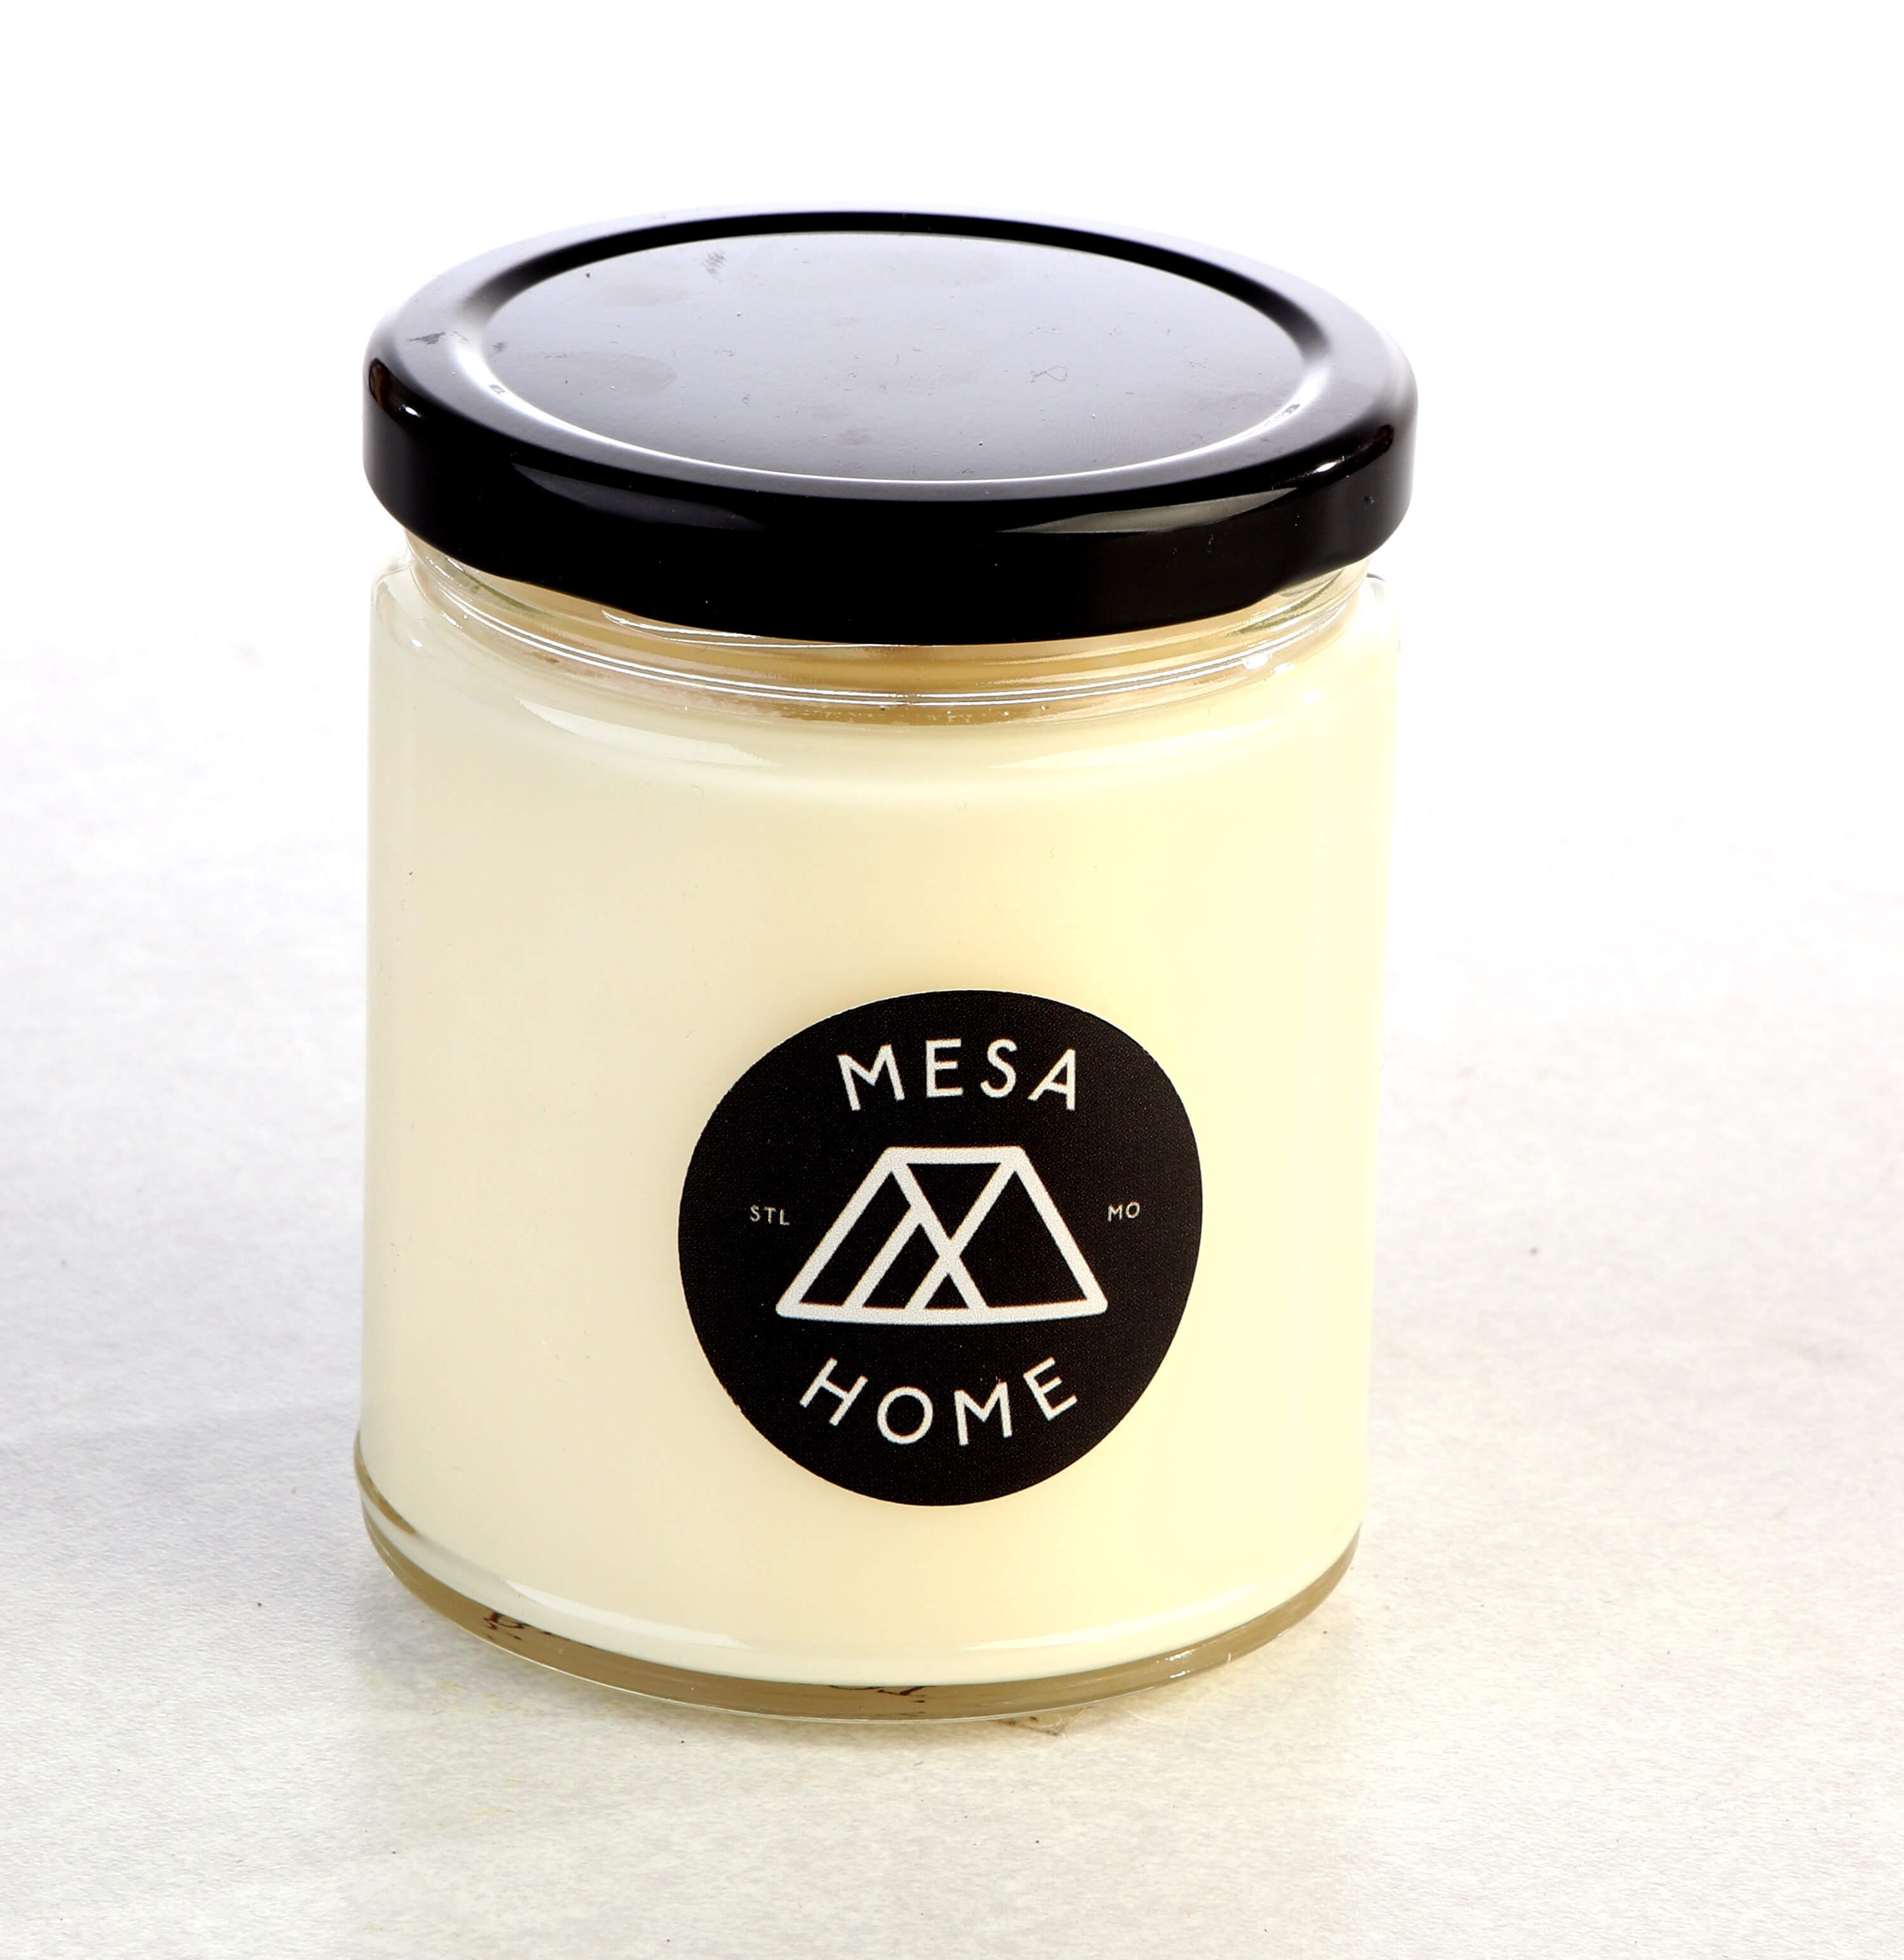 Bergamot and ginger scented candle